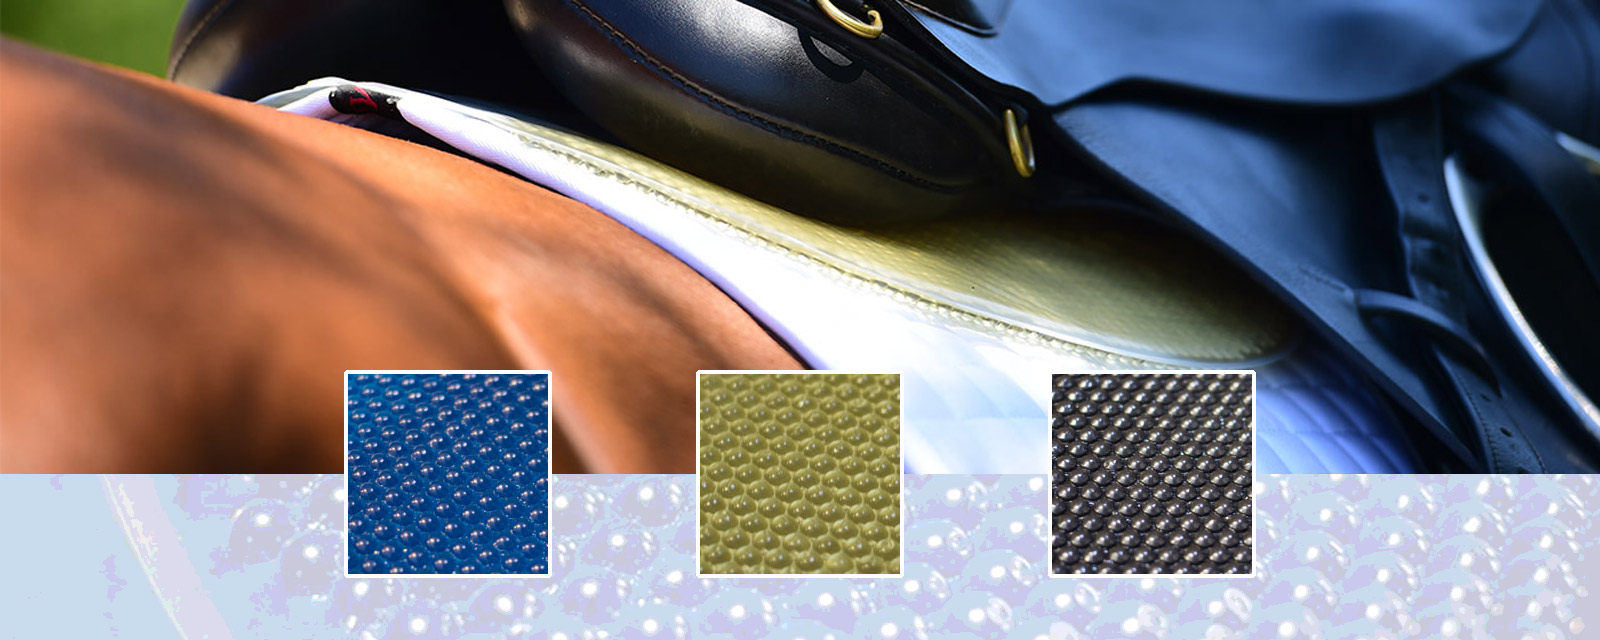 VIP Saddle Pads - Pressure Relieving Equestrian Saddle Pads